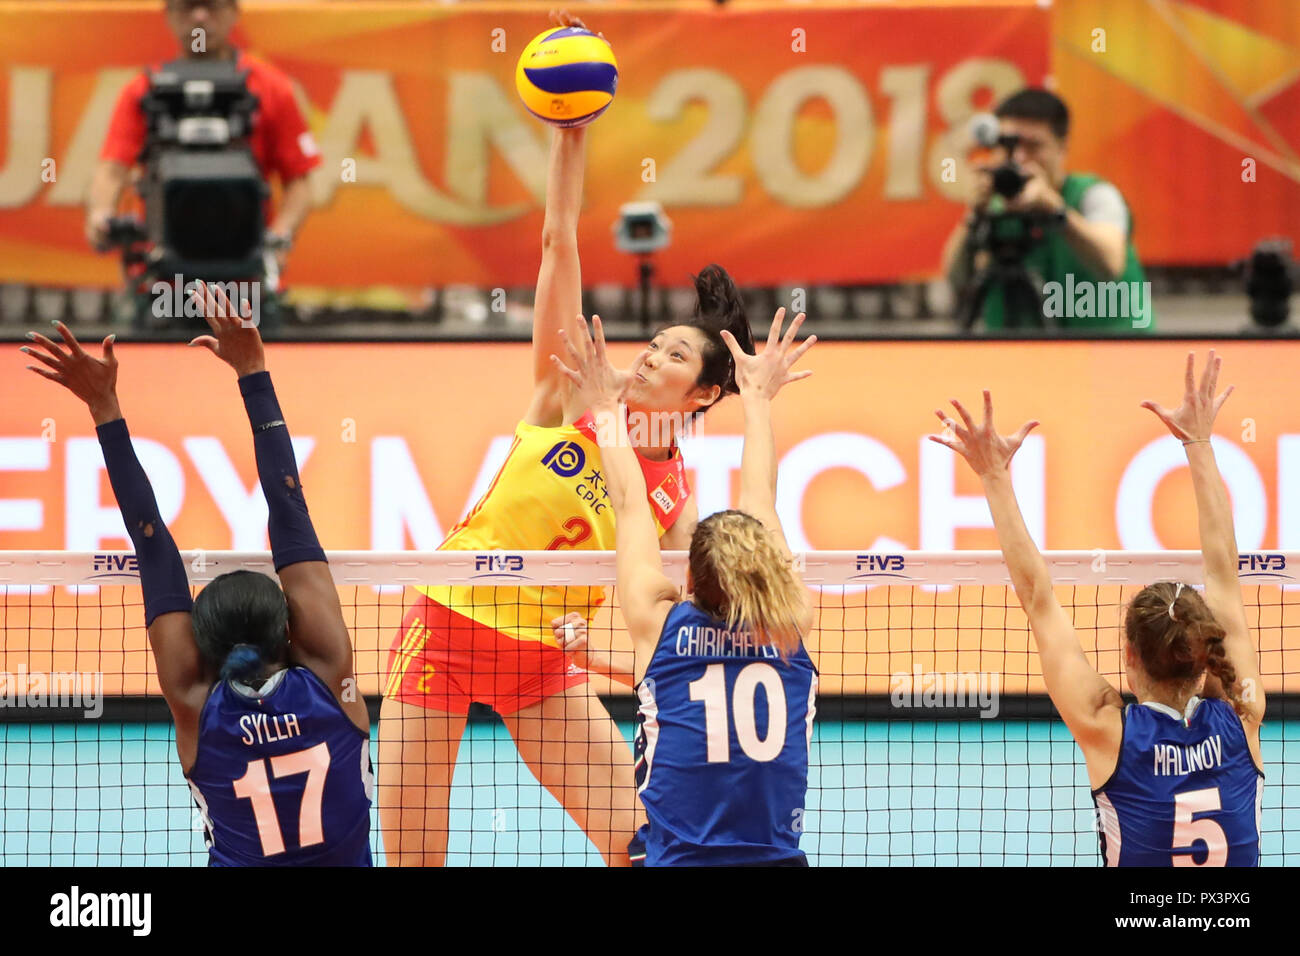 Yokohama Japan 19th Oct 2018 Zhu Ting Top Of China Spikes During The Semifinal Match Against Italy At The 2018 Volleyball Women S World Championship In Yokohama Japan Oct 19 2018 China Lost